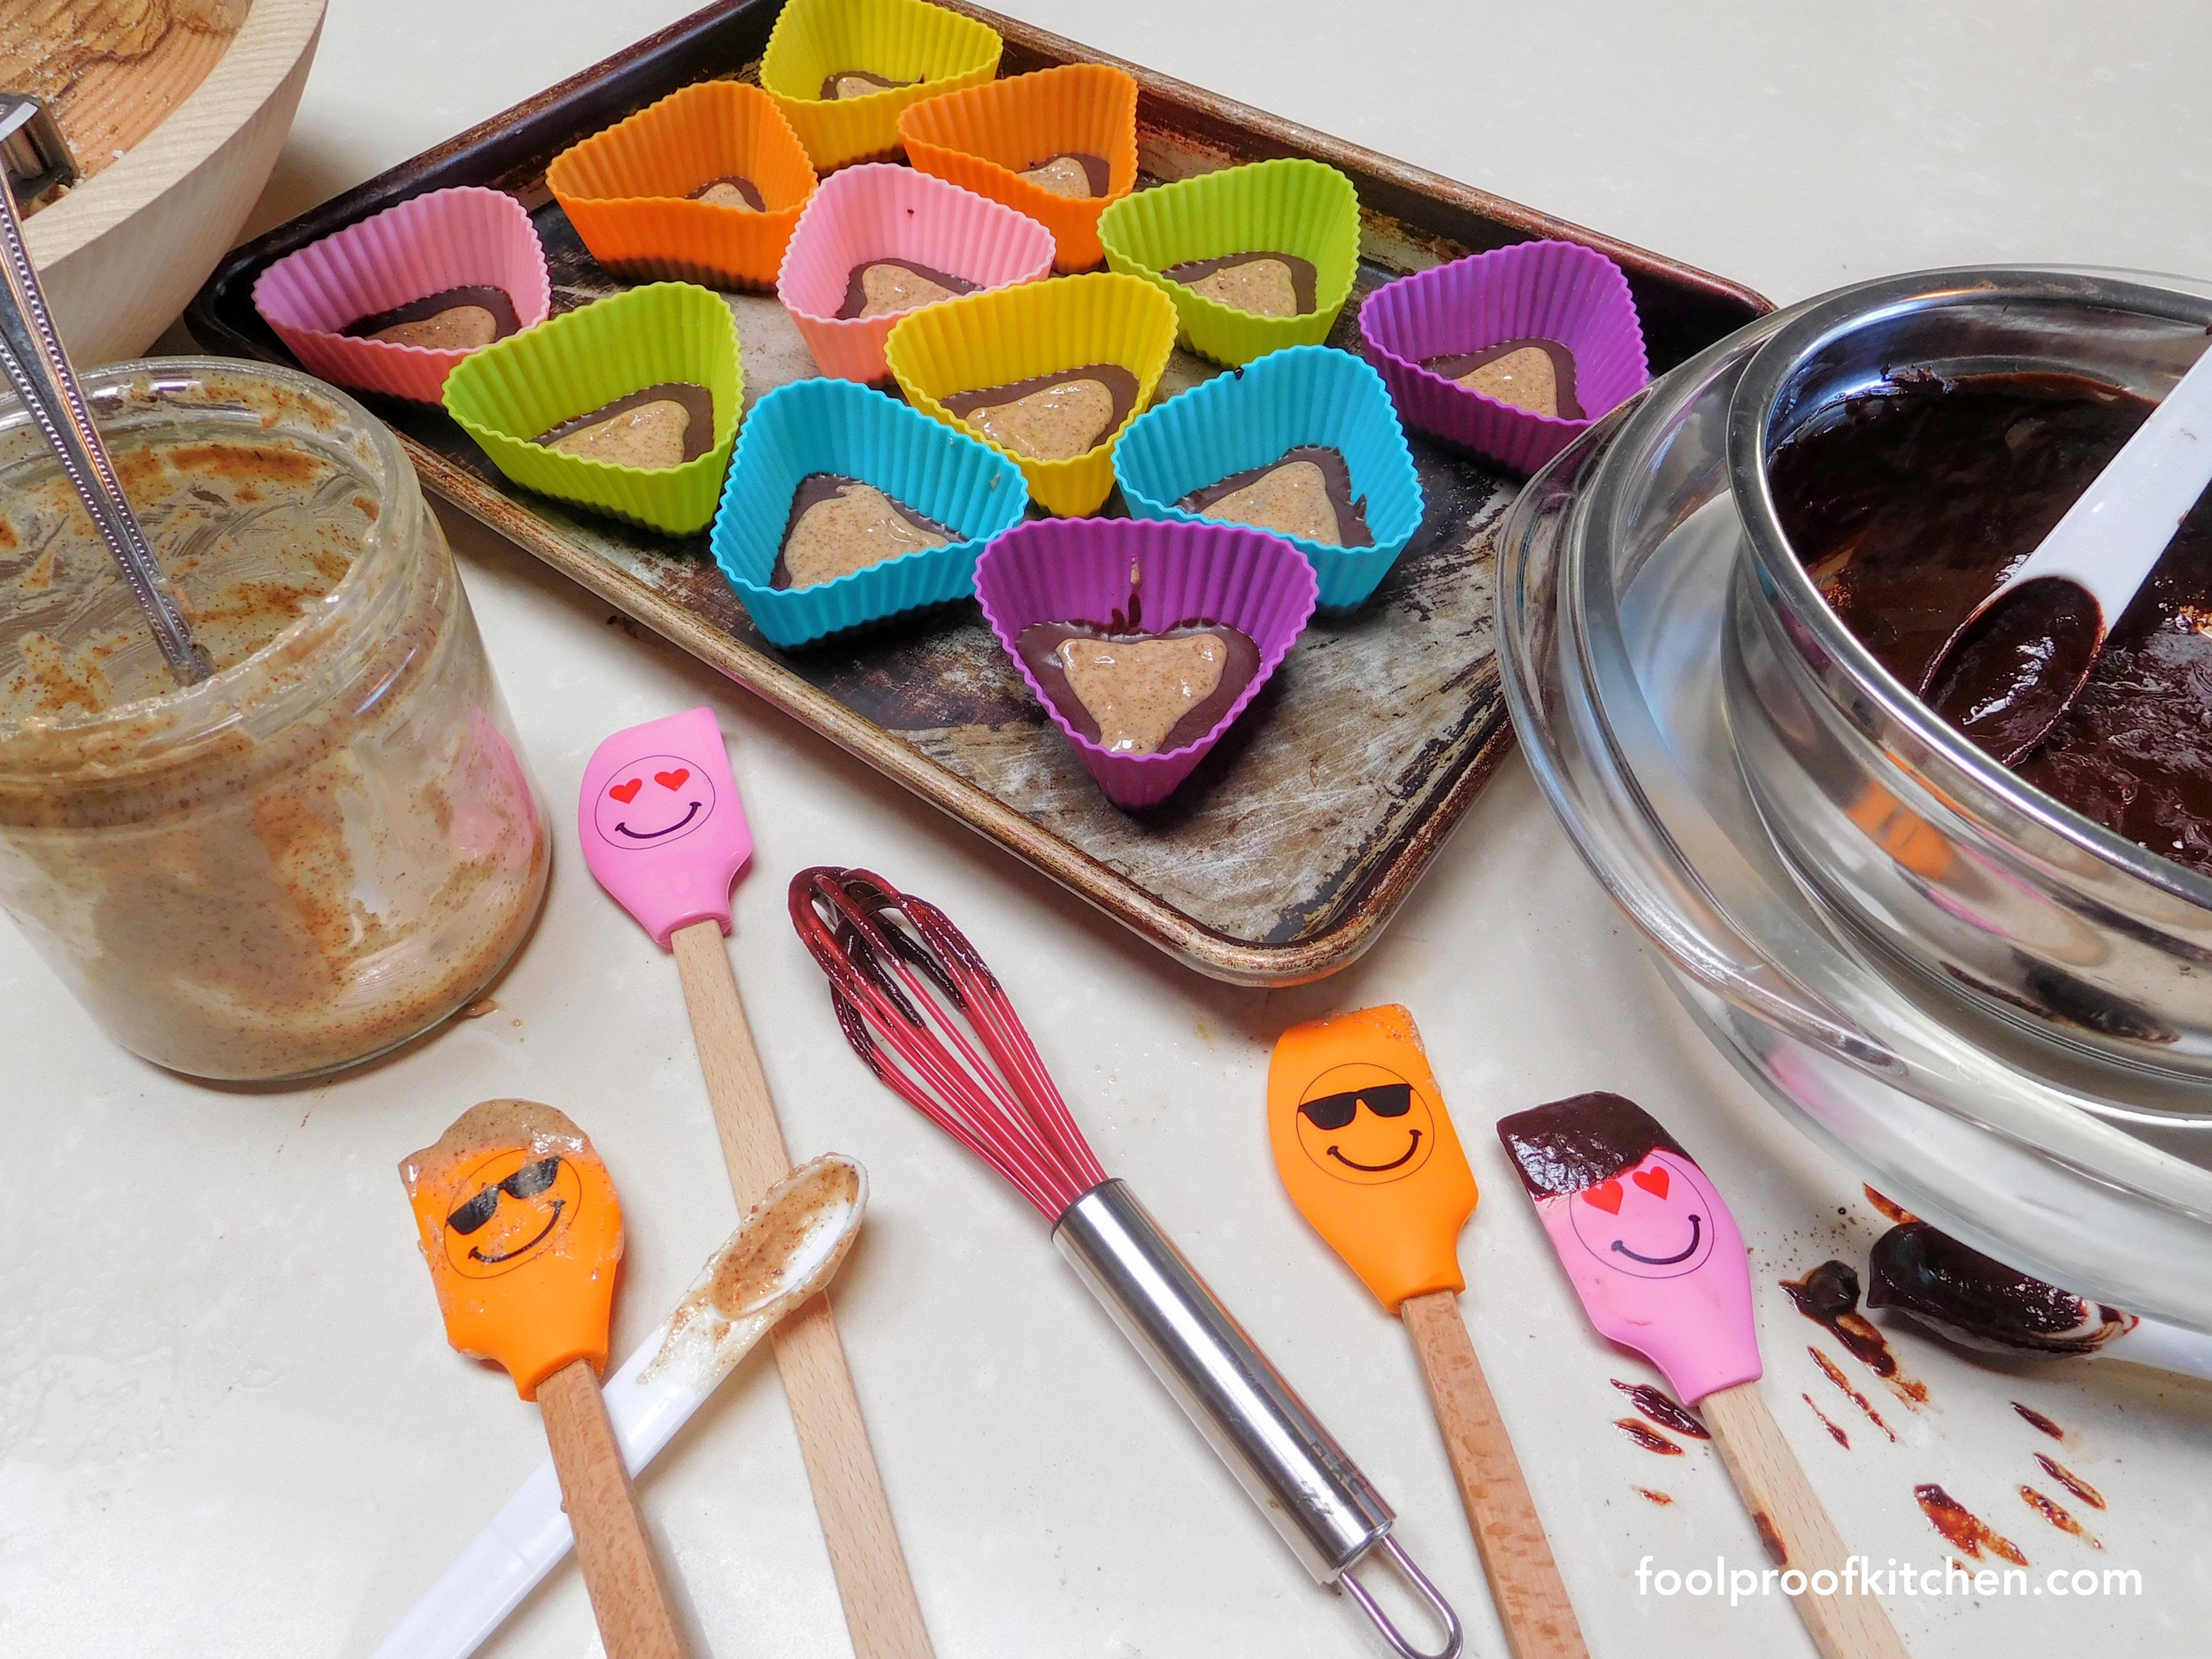 Making raw cacao chocolates with homemade organic almond butter on Vday. The spatulas had a double date.